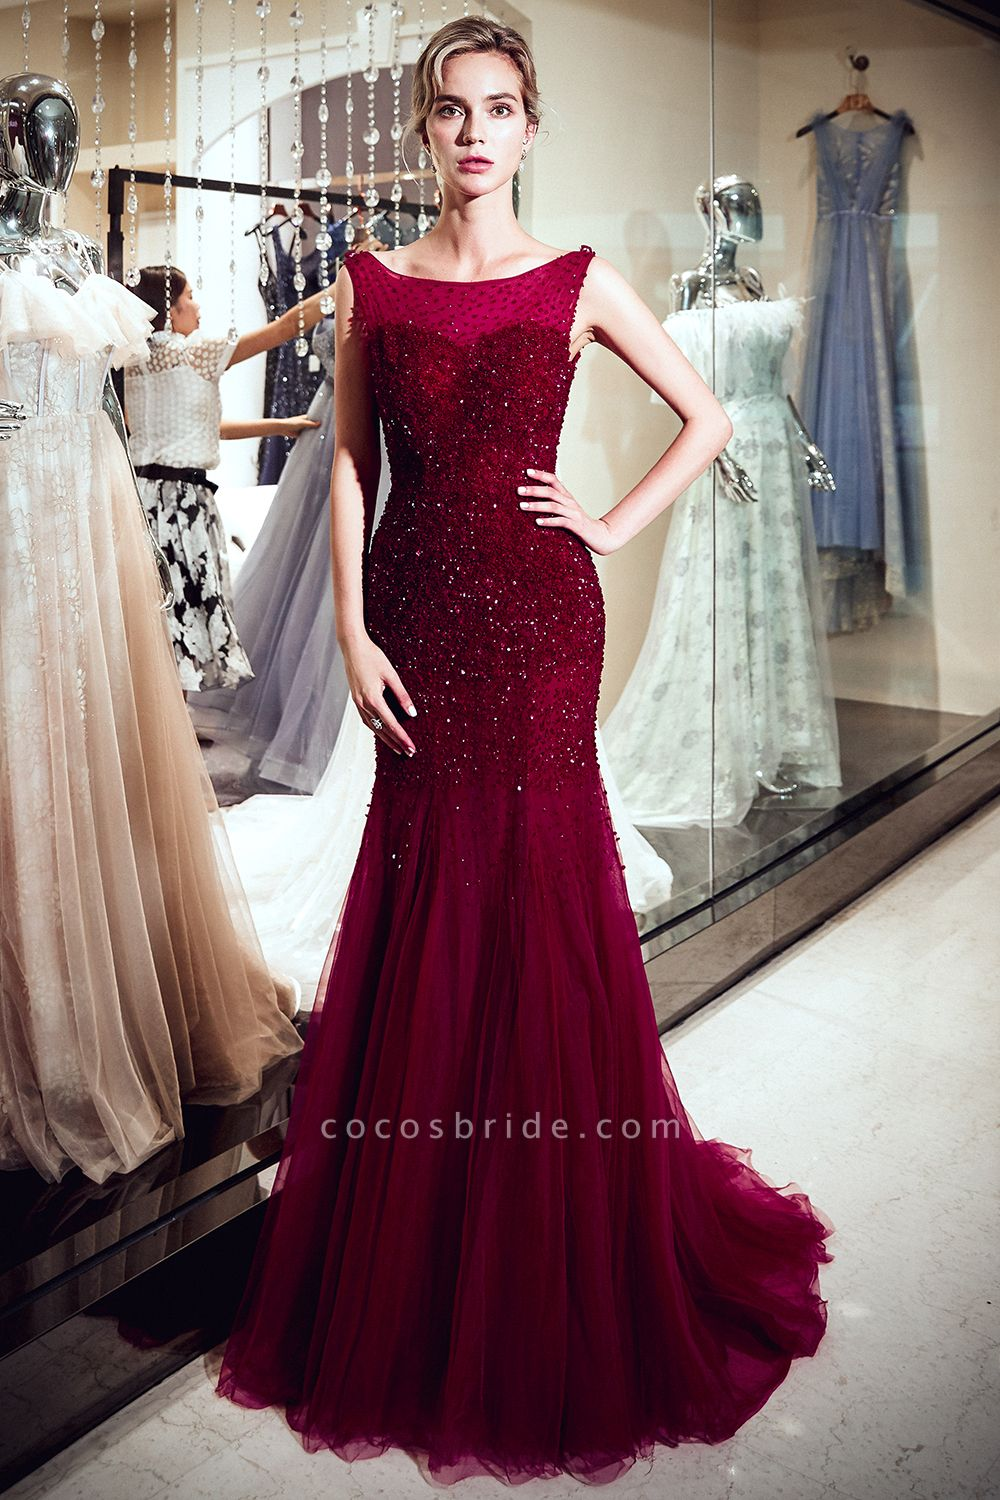 Mermaid Sleeveless Sequined Tulle Burgundy Long Evening Gowns